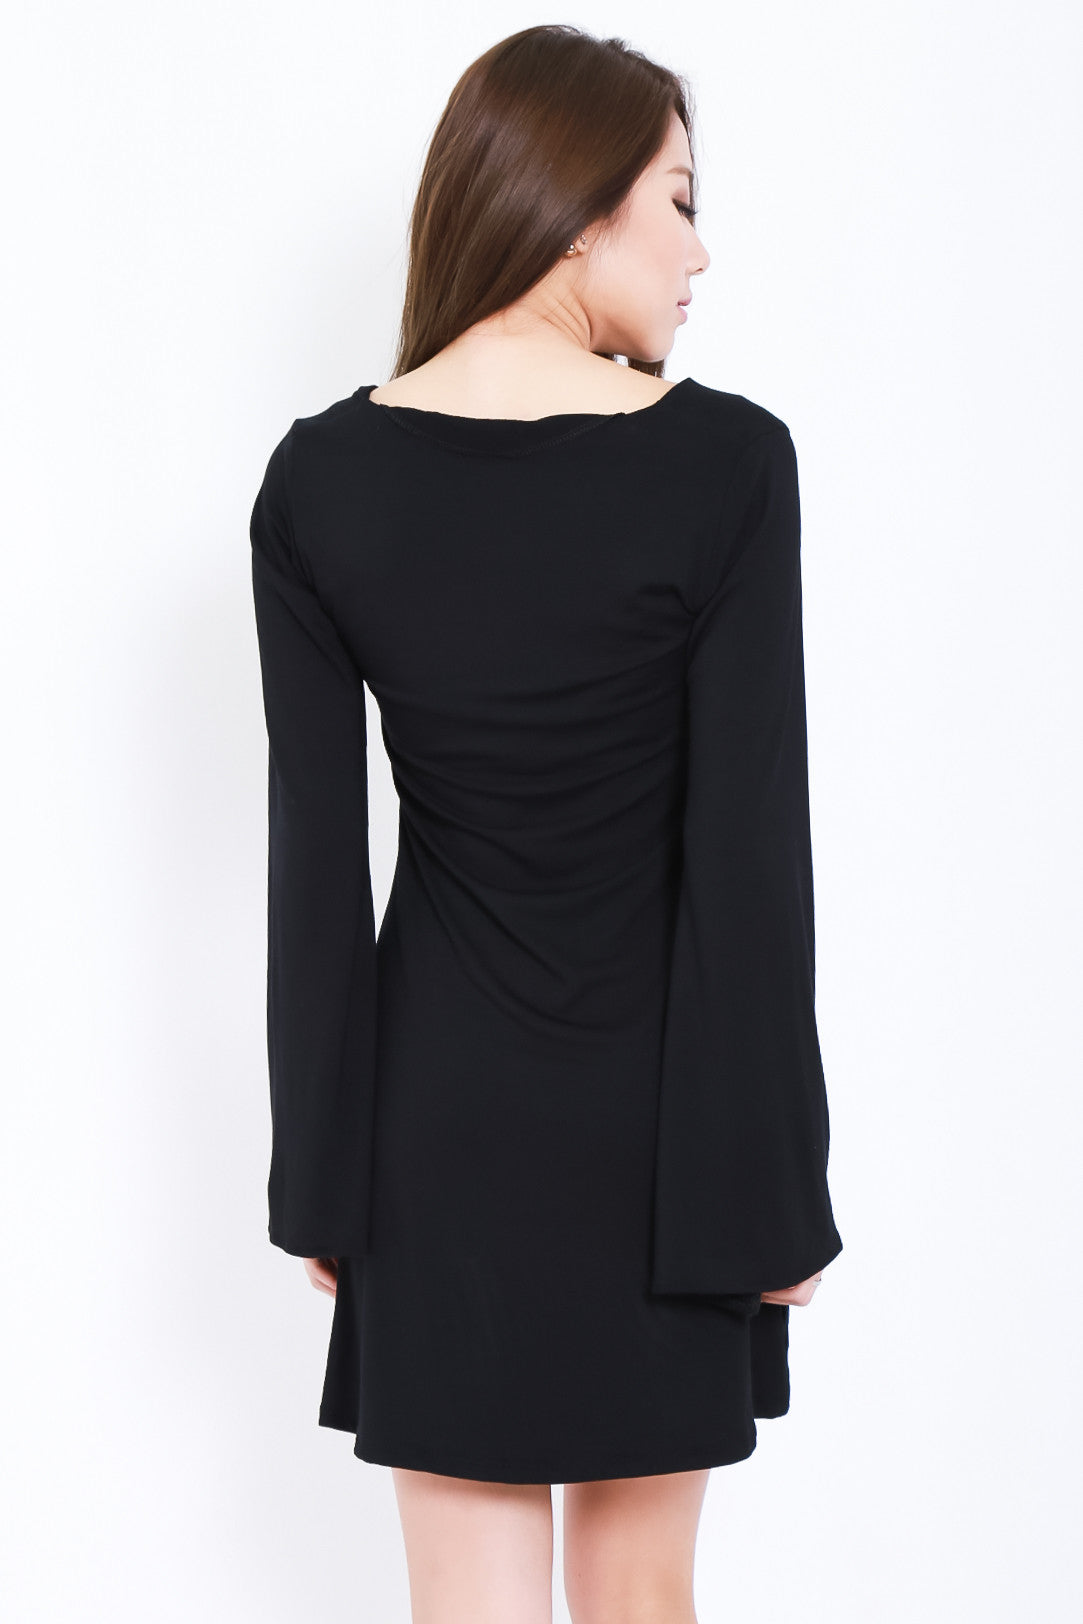 *RESTOCKED* BREE LACED BELL SLEEVES DRESS IN BLACK - TOPAZETTE